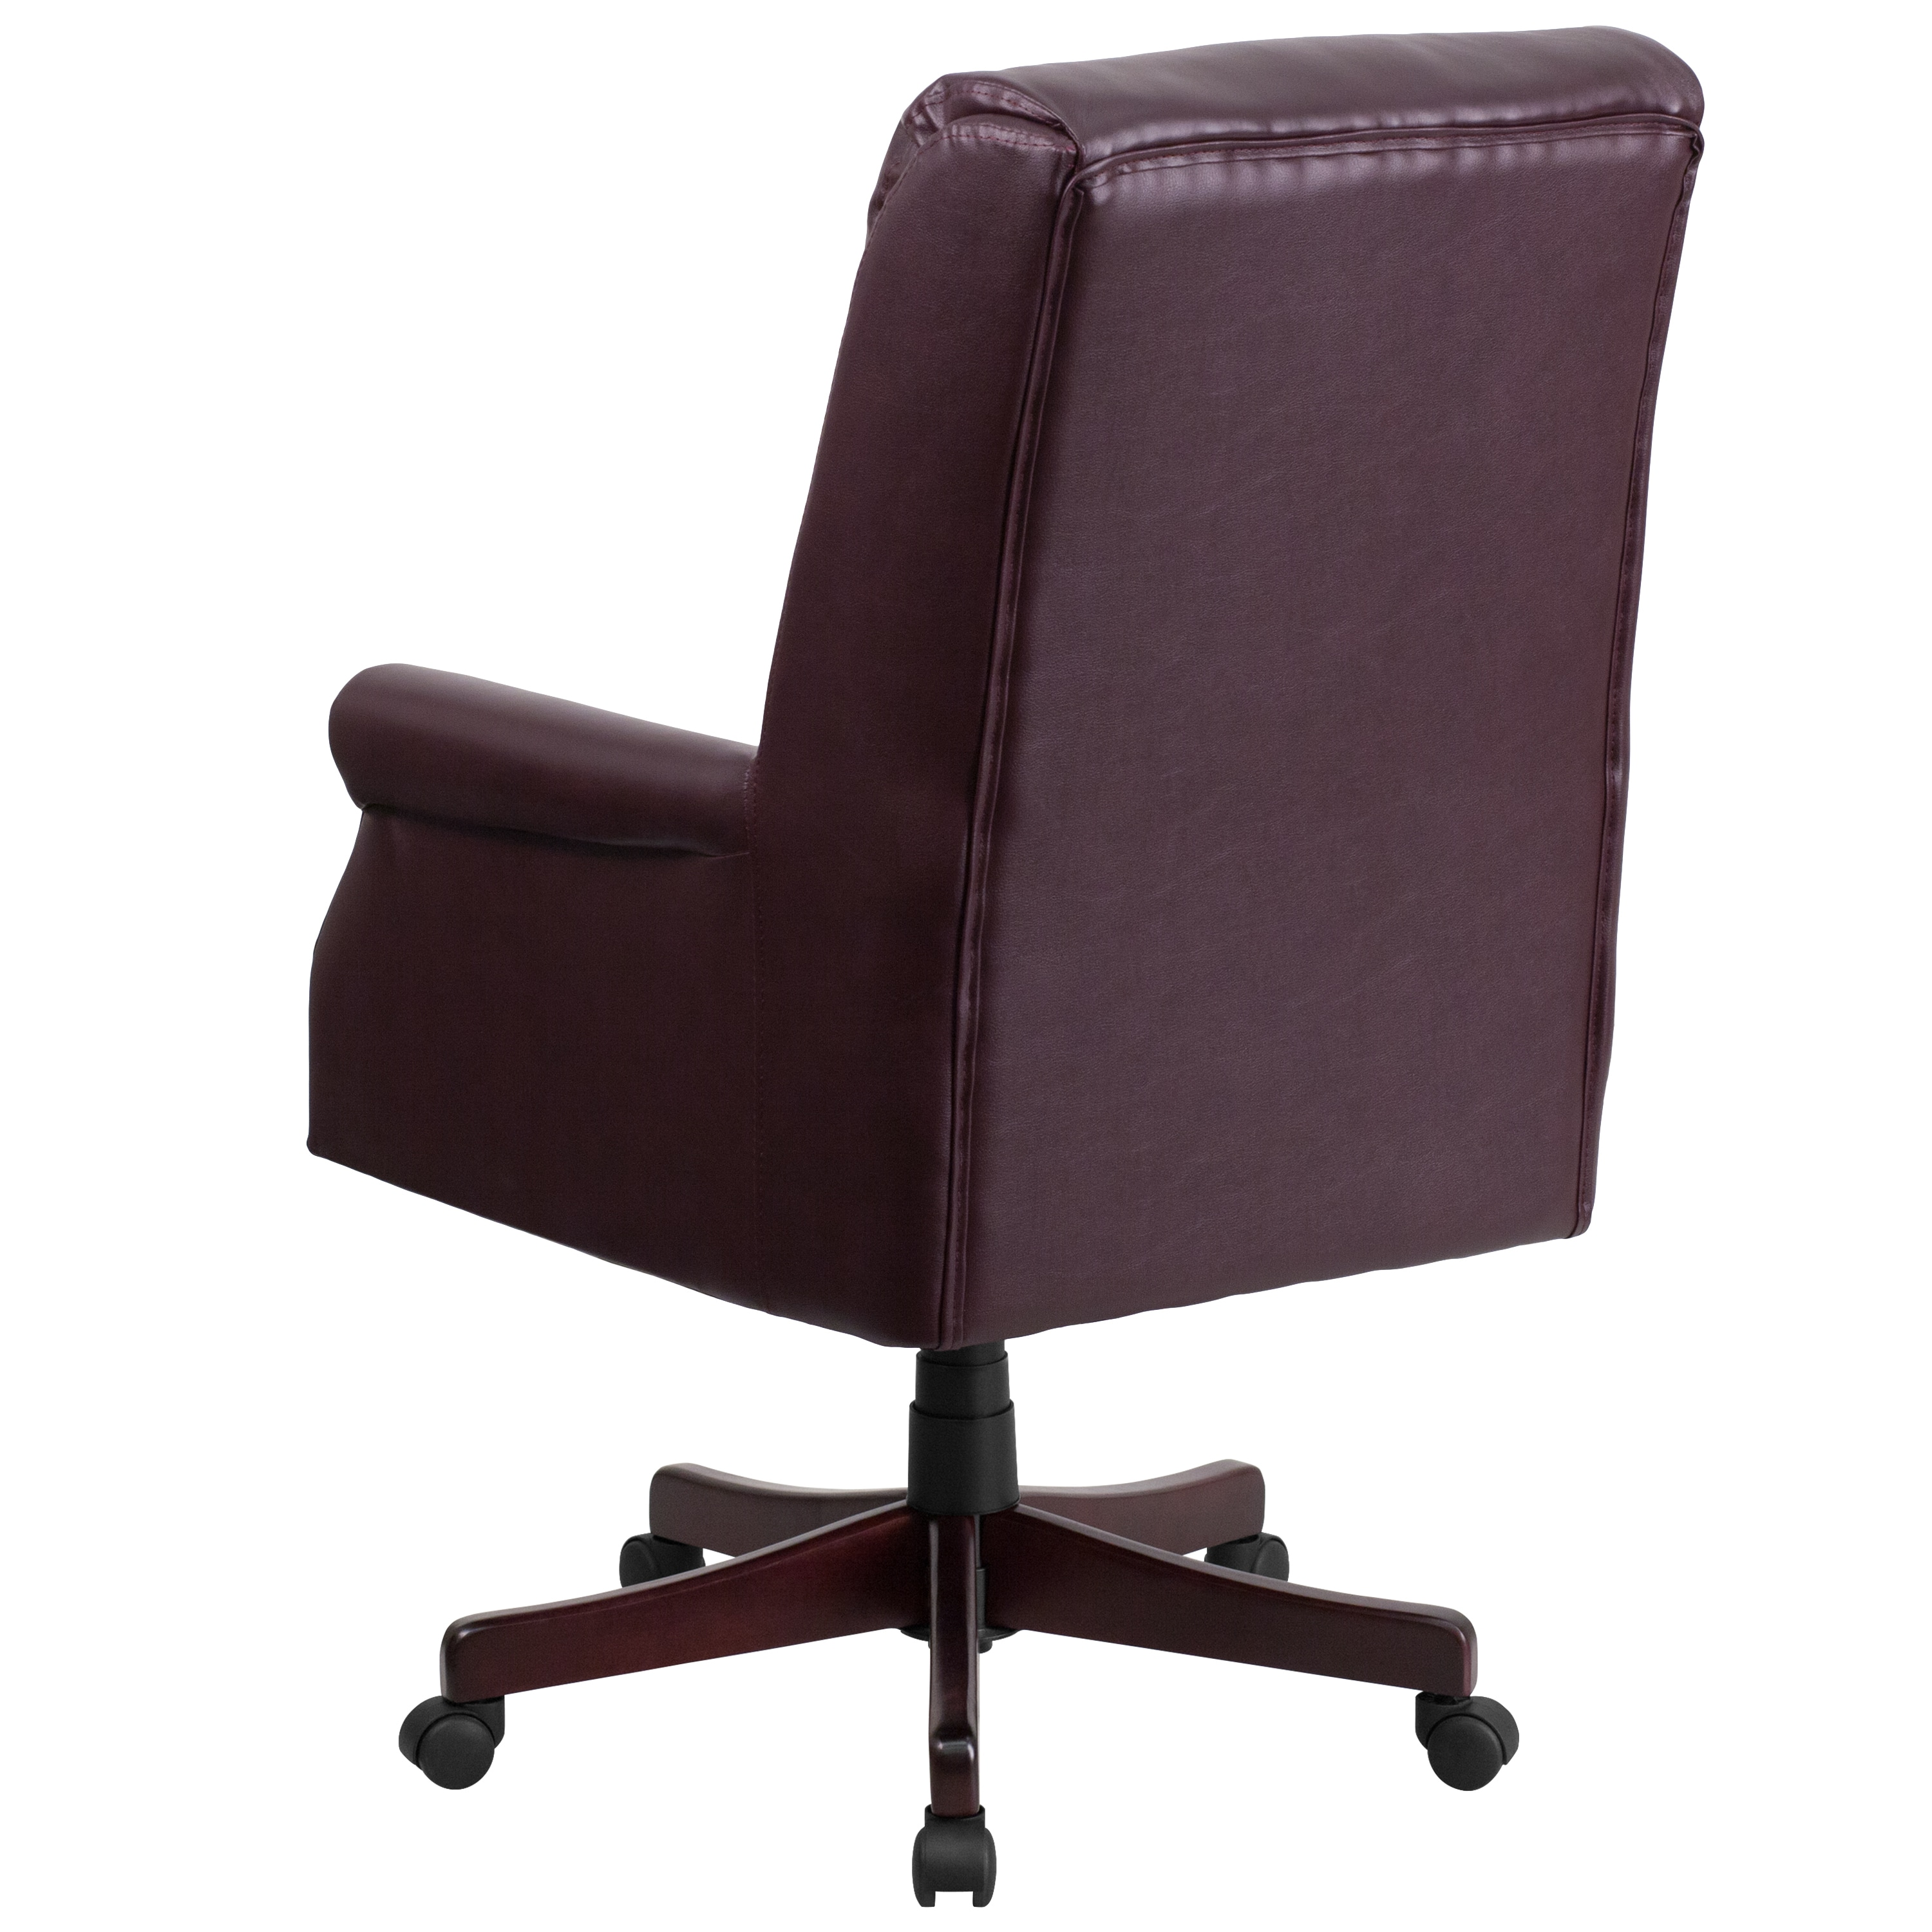 Ceo Pillow Back Executive Burgundy Leather Adjule Swivel Office Chair With Mahogany Wood Base Free Shipping Today 17016248